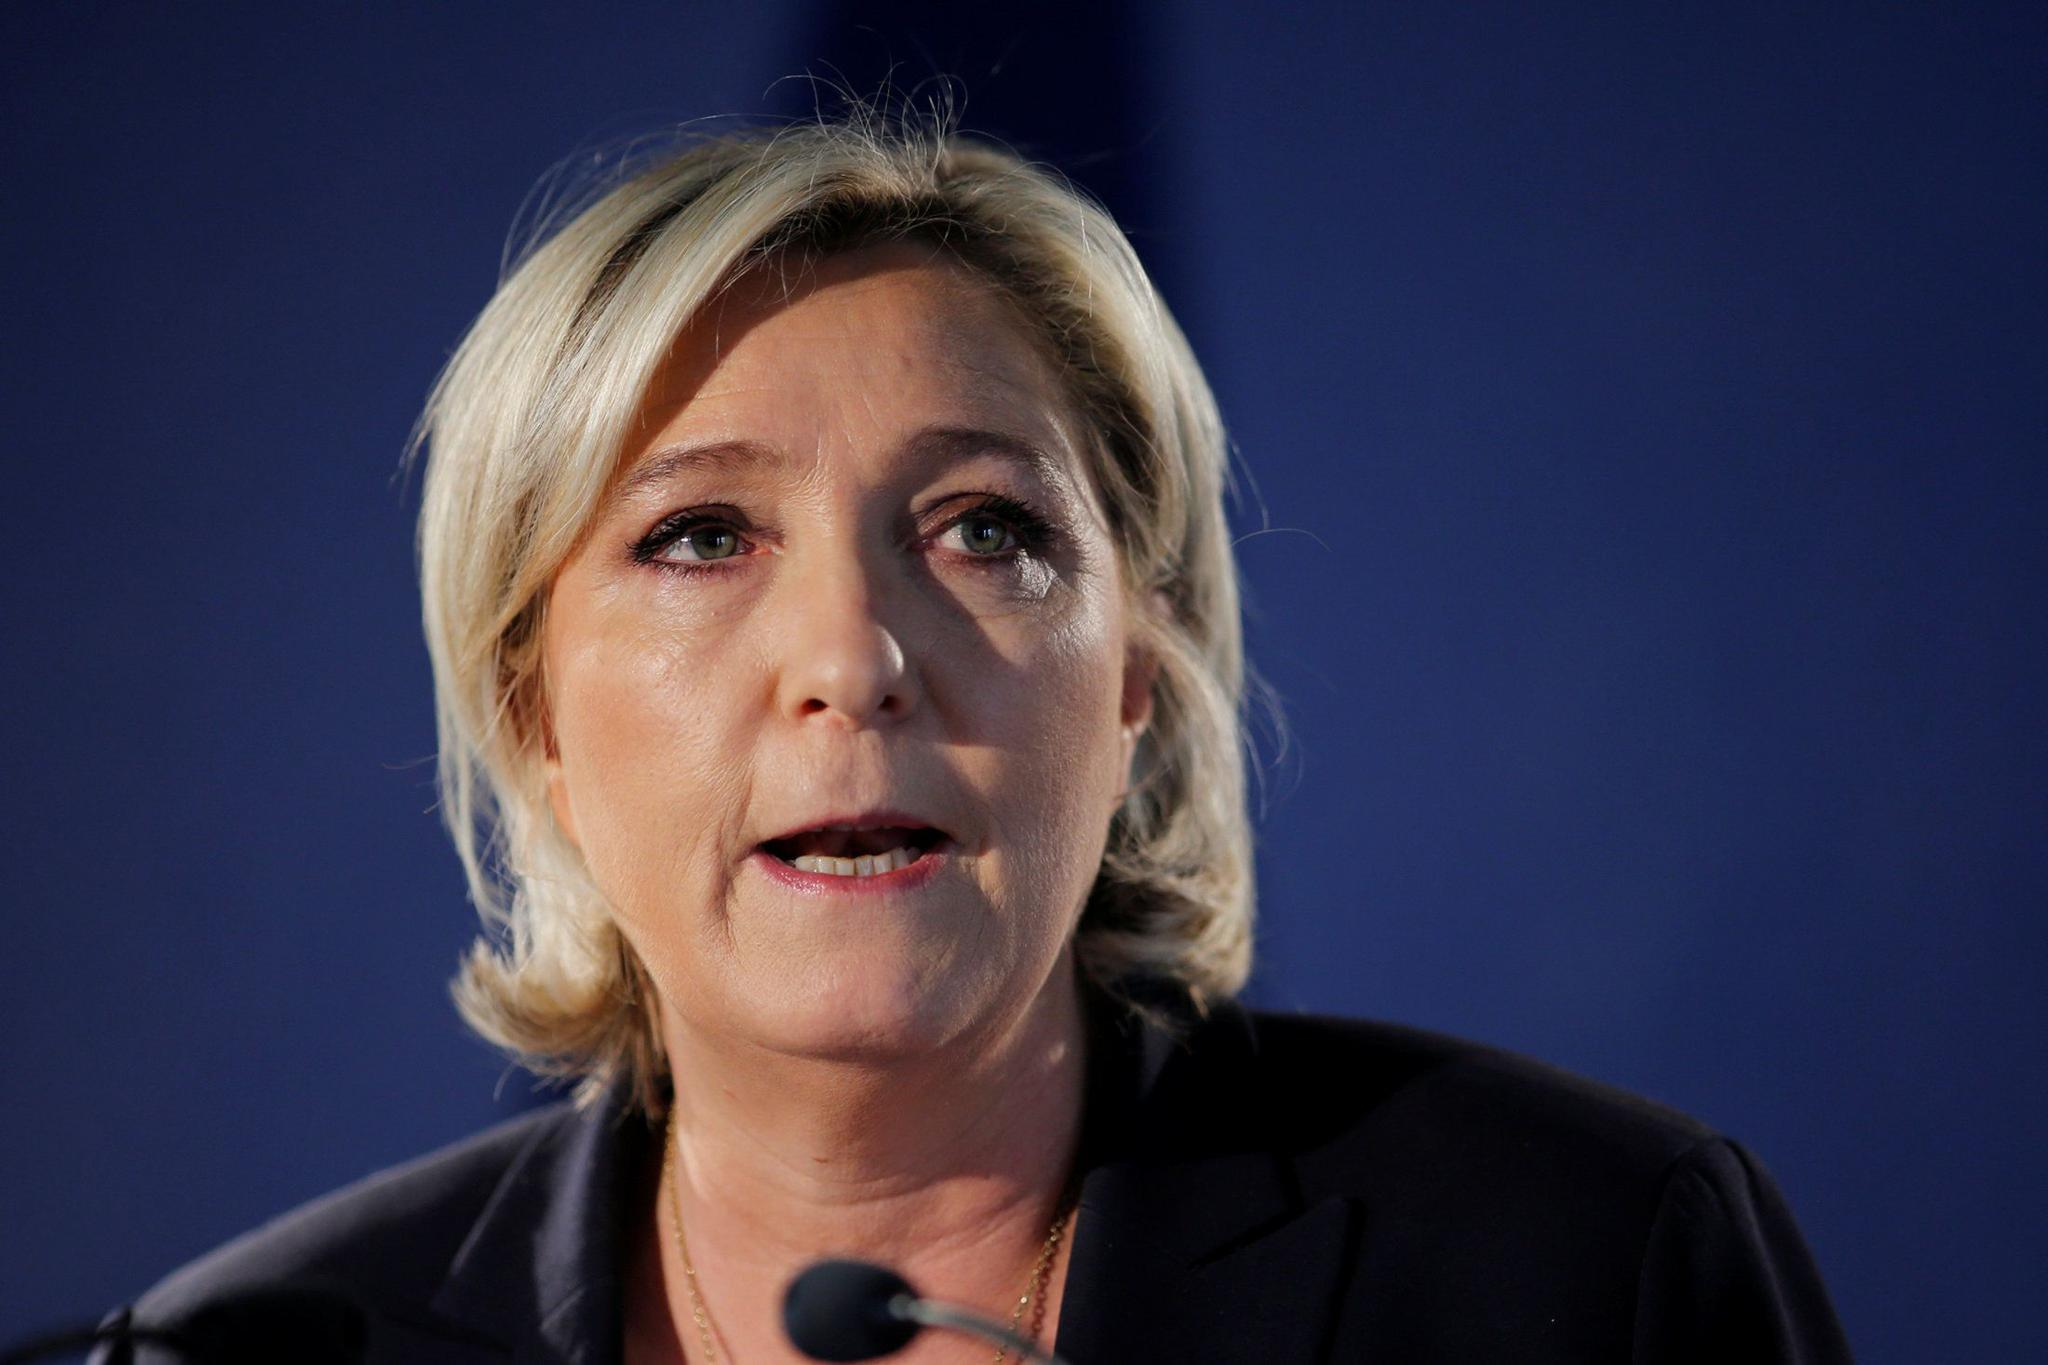 """Marine Le Pen, French National Front candidate for the French 2017 presidential election, attends a news conference in Paris on April 21. Le Pen wants a """"Frexit,"""" but the EU's real threats are further east."""